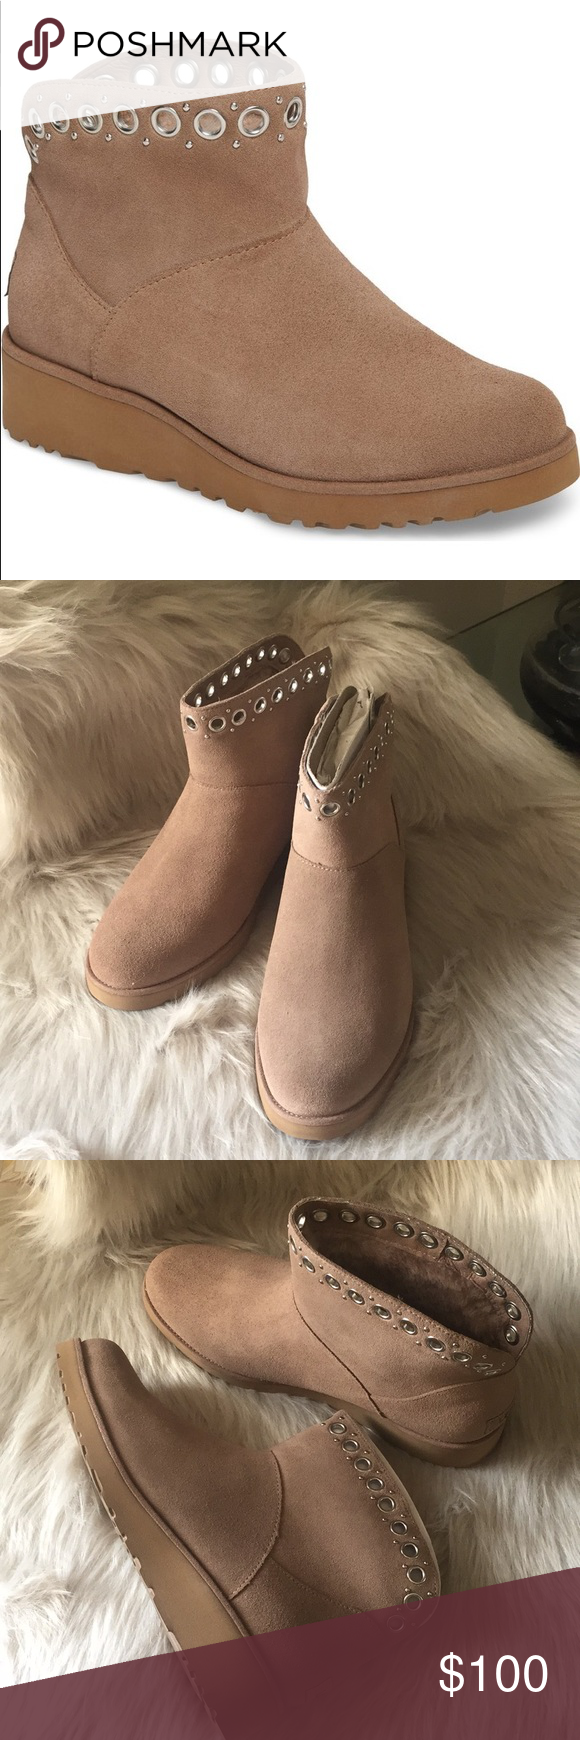 362bfa91549 NEW UGG RILEY. Color FAWN Model  1020054 A touch of hardware transforms this